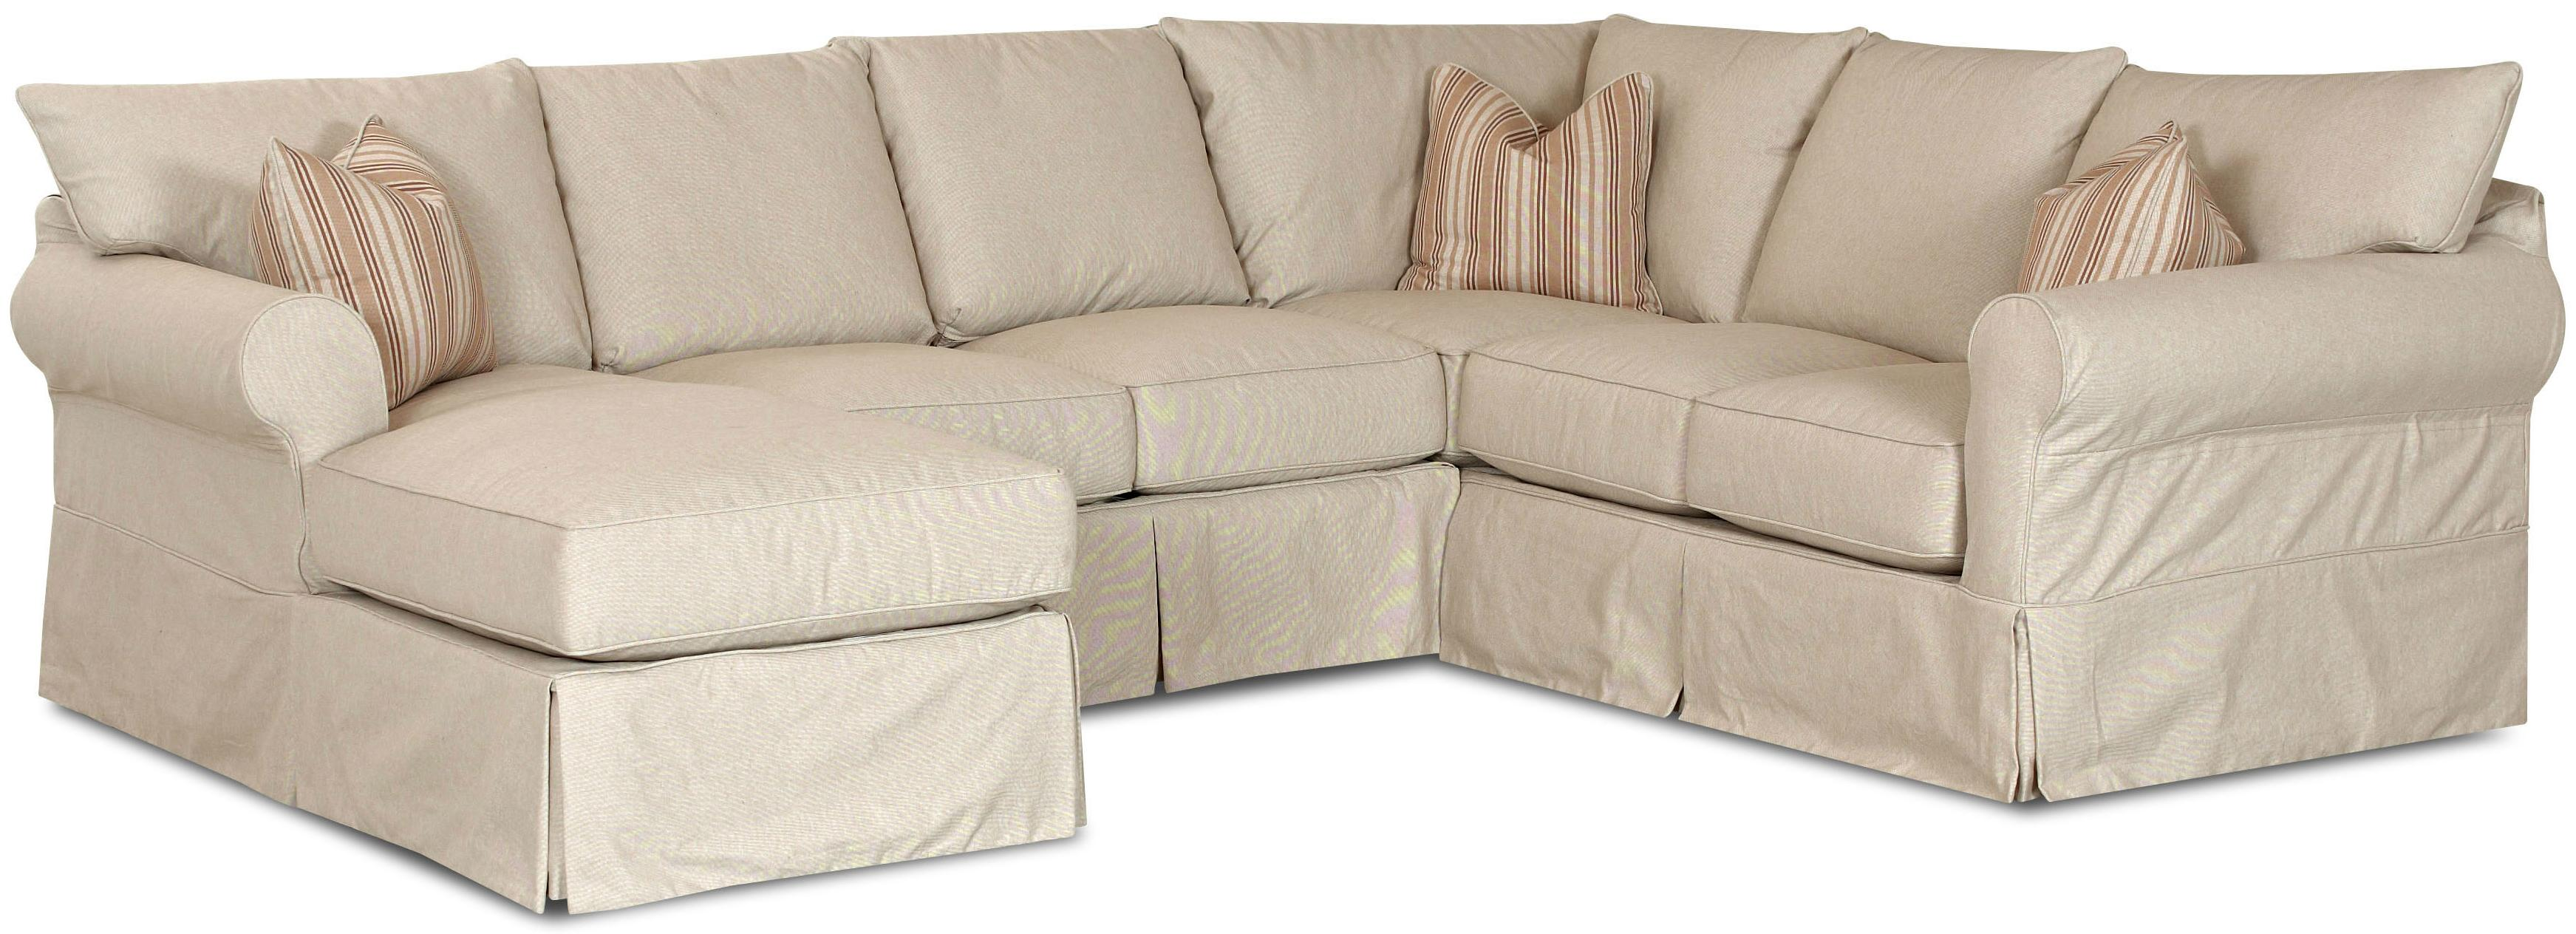 Slip Cover Sectional Sofa With Left Chaise By Klaussner Wolf And Gardiner W